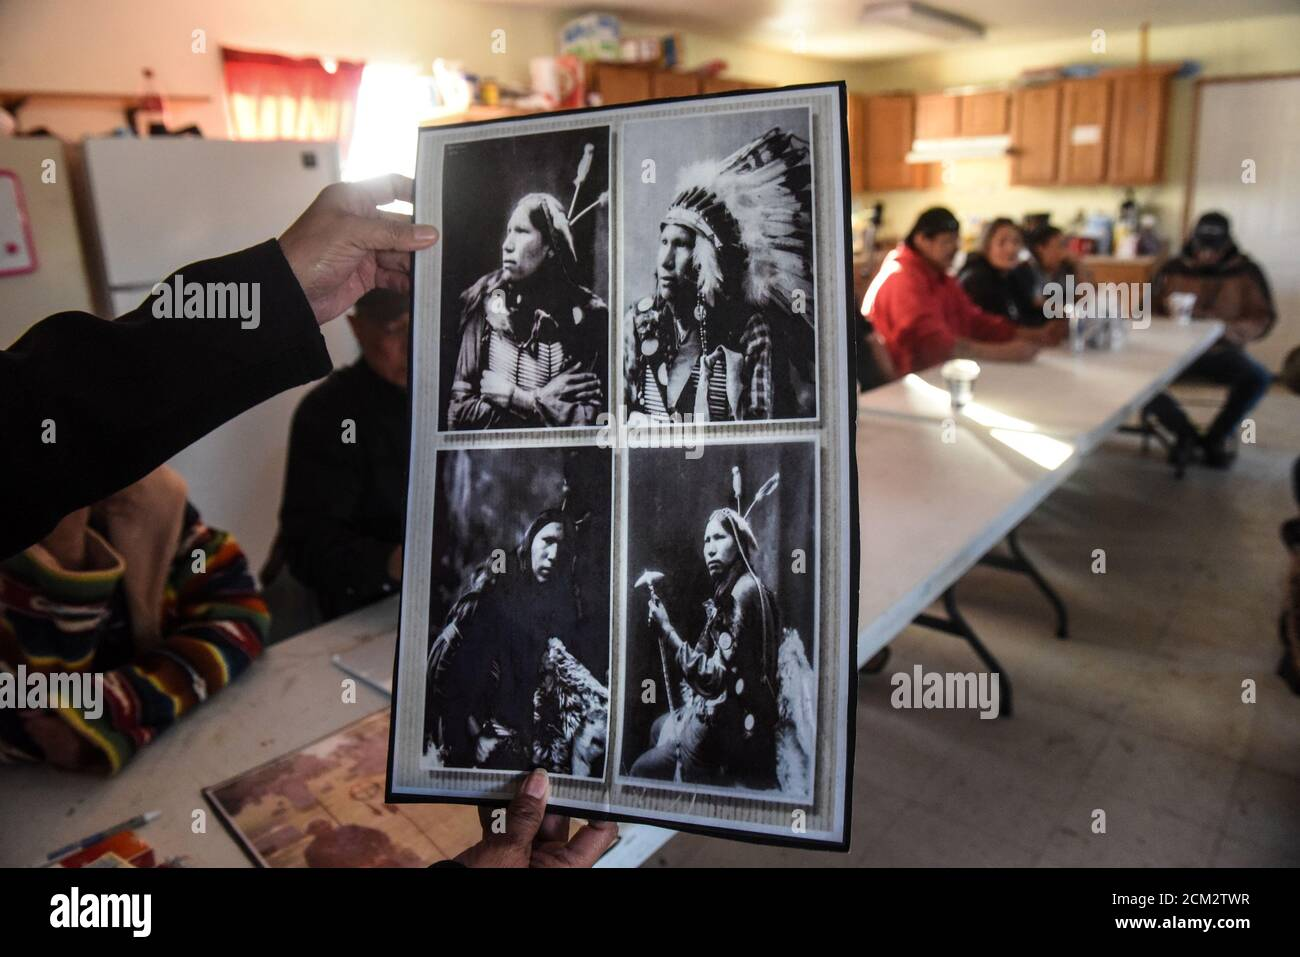 Descendant of the Lakotas killed at the Wounded Knee massacre gather at a community building while a person displays photos of an ancestor on the Cheyenne River reservation in Bridger, South Dakota, November 7, 2019.  REUTERS/Stephanie Keith Stock Photo